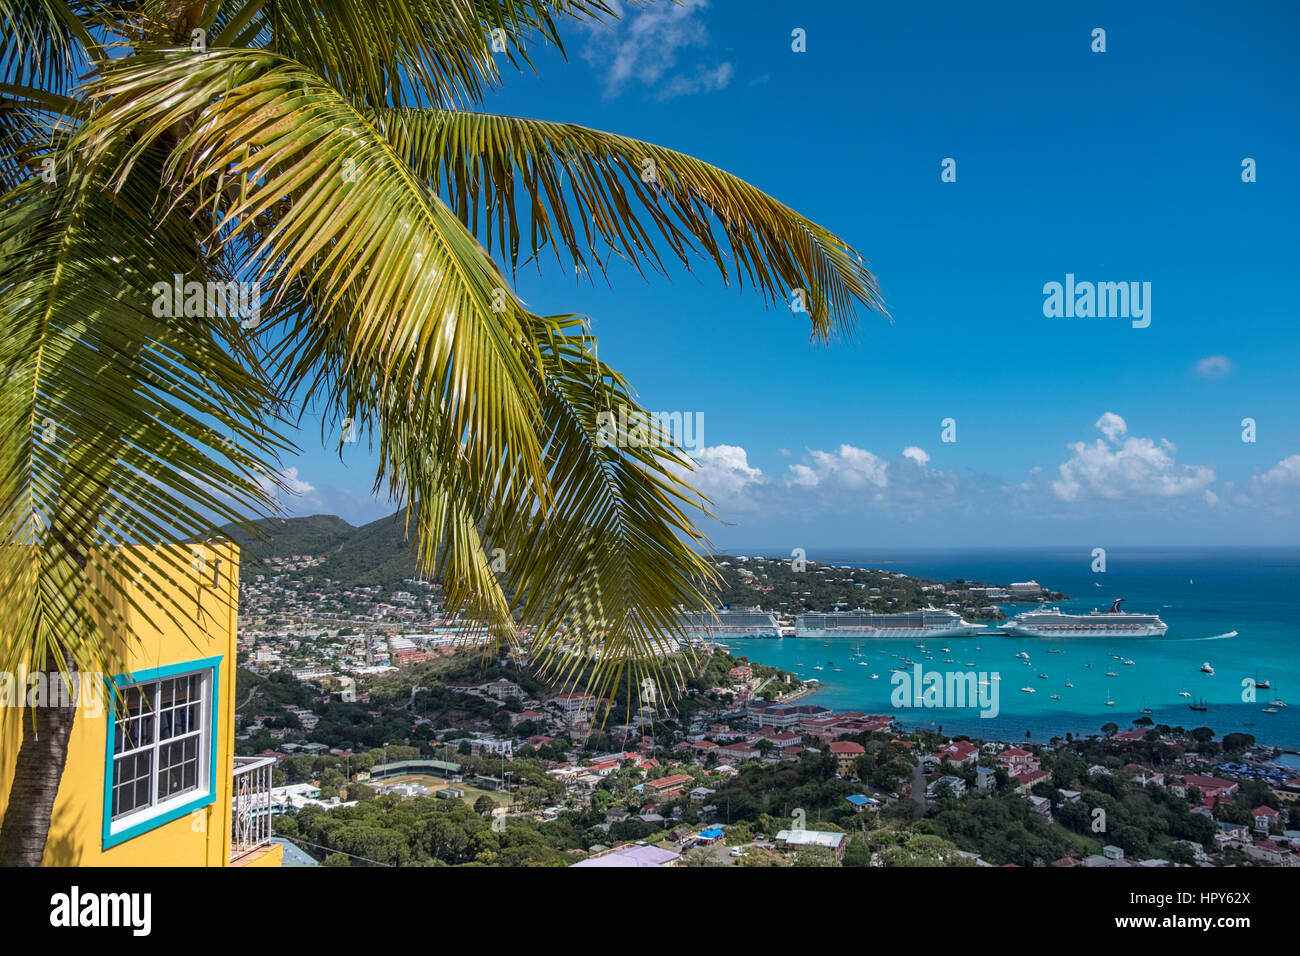 The beautiful town of Charlotte Amalie in Saint Thomas  US virgin islands in the Caribbean sea Stock Photo